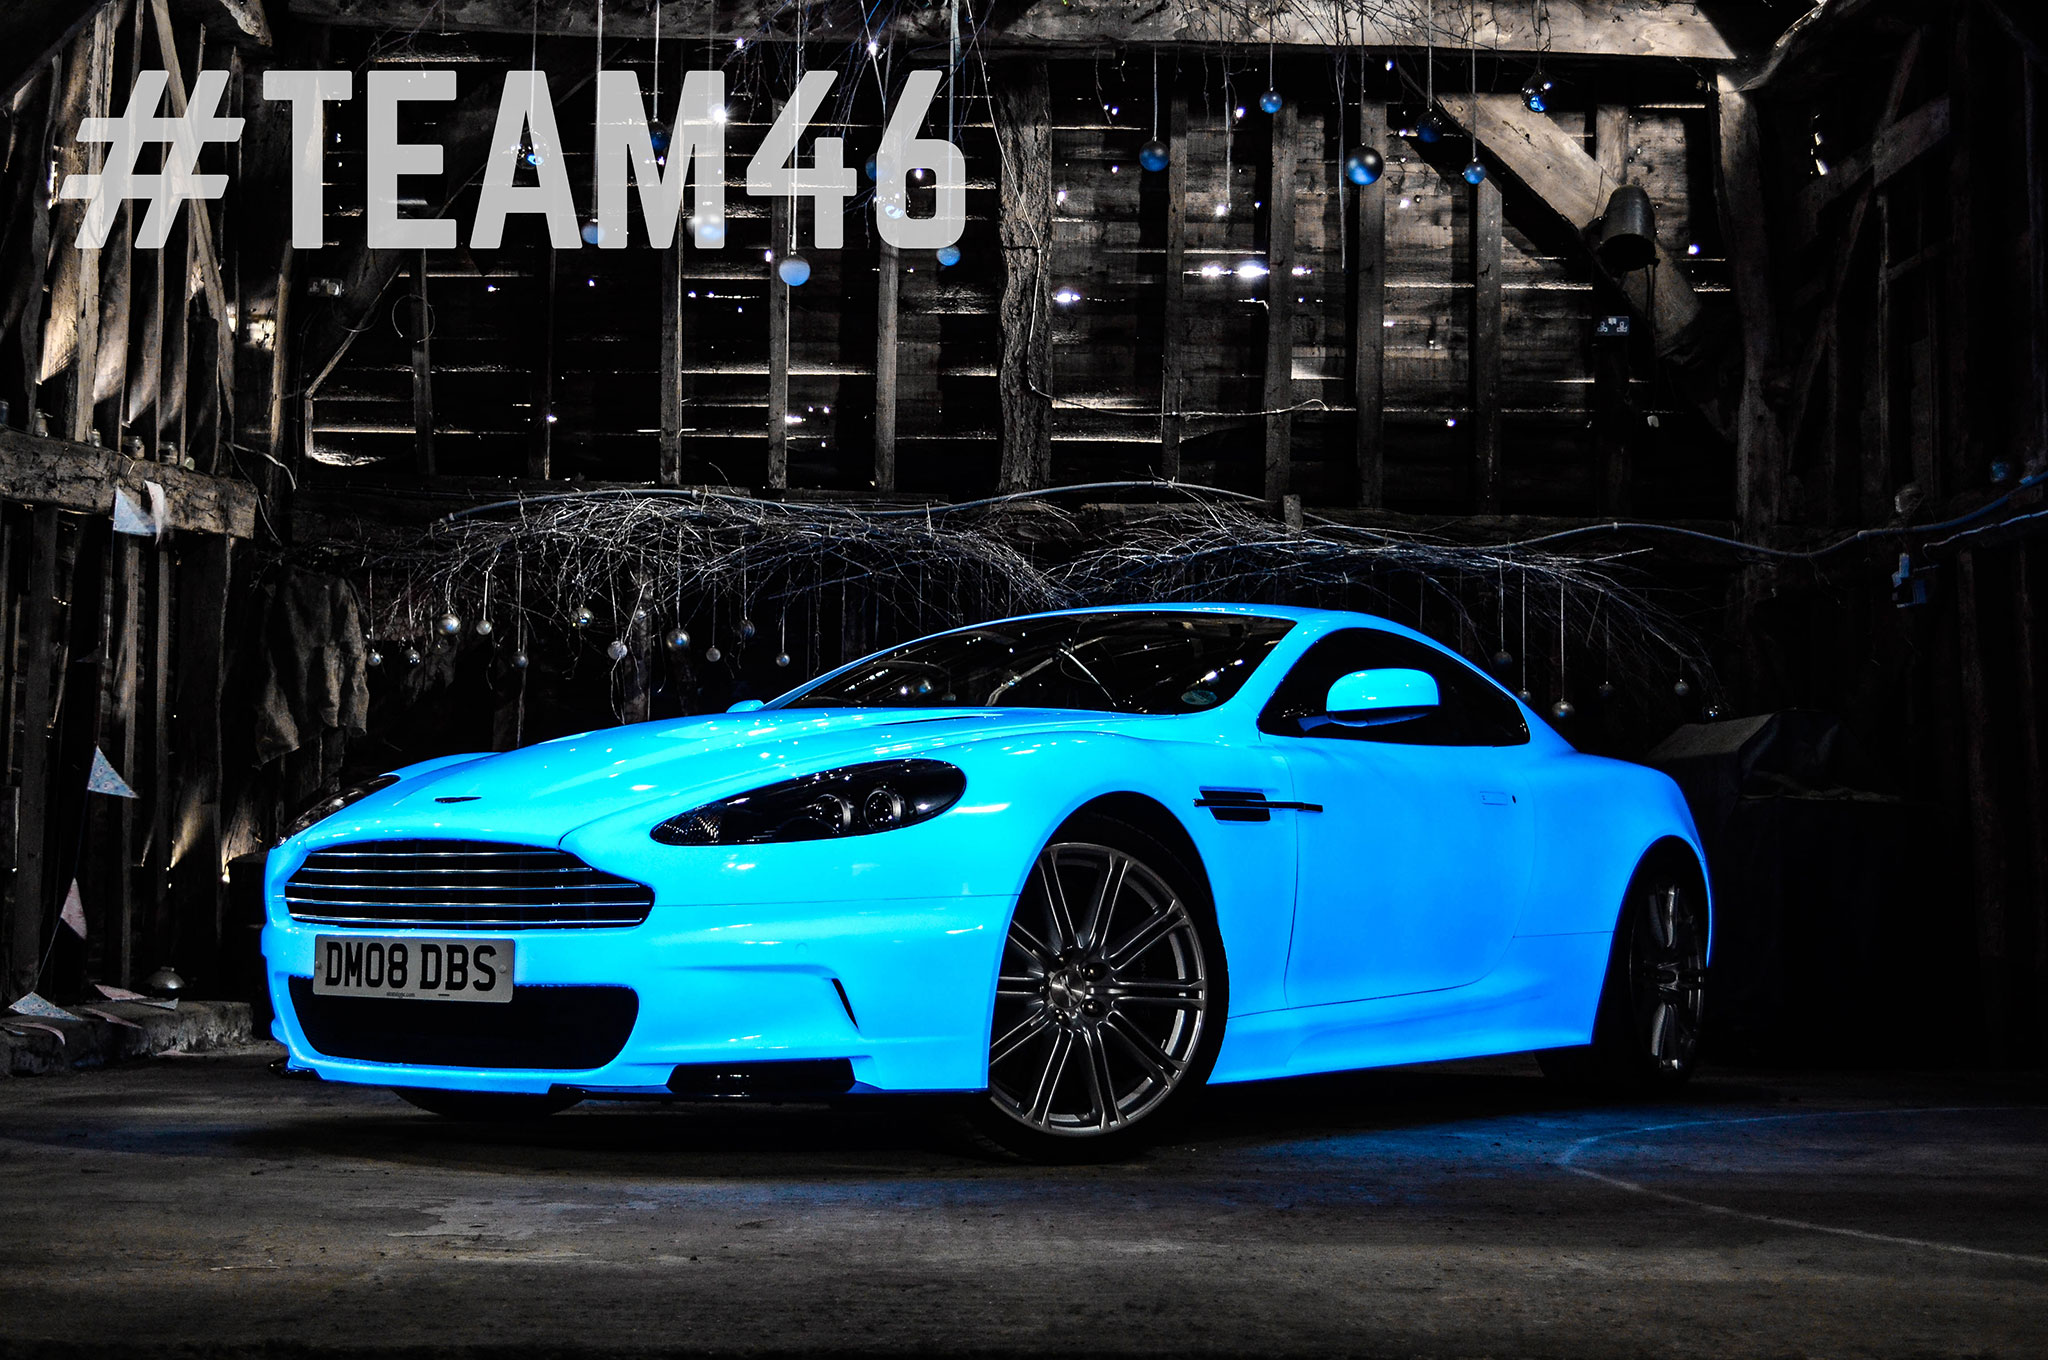 UV-Coated Aston Martin DBS Glows and Goes in Gumball 3000 Rally